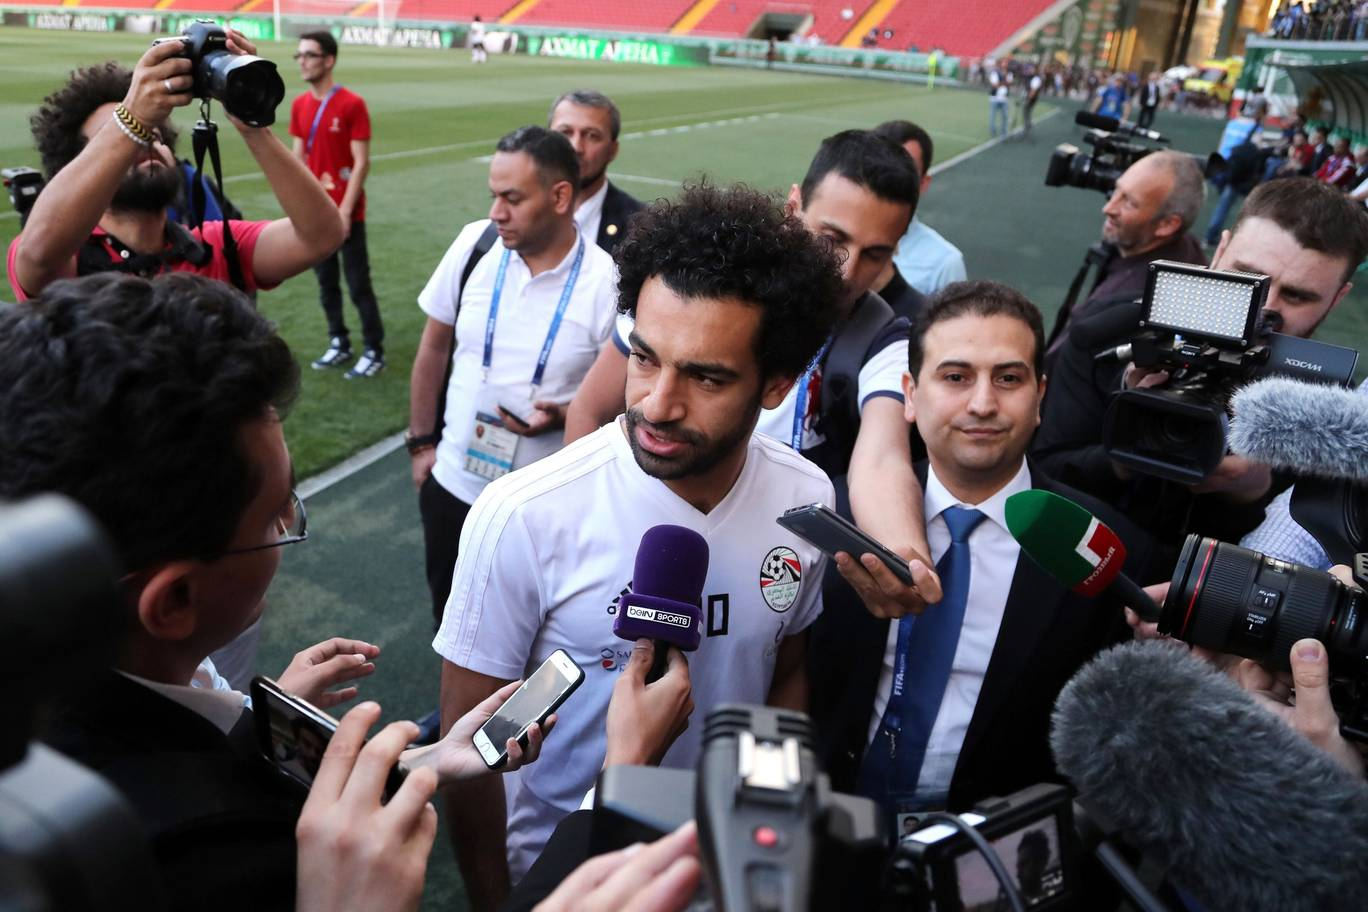 Egyptian national team football player and Liverpools star striker Mohamed Salah